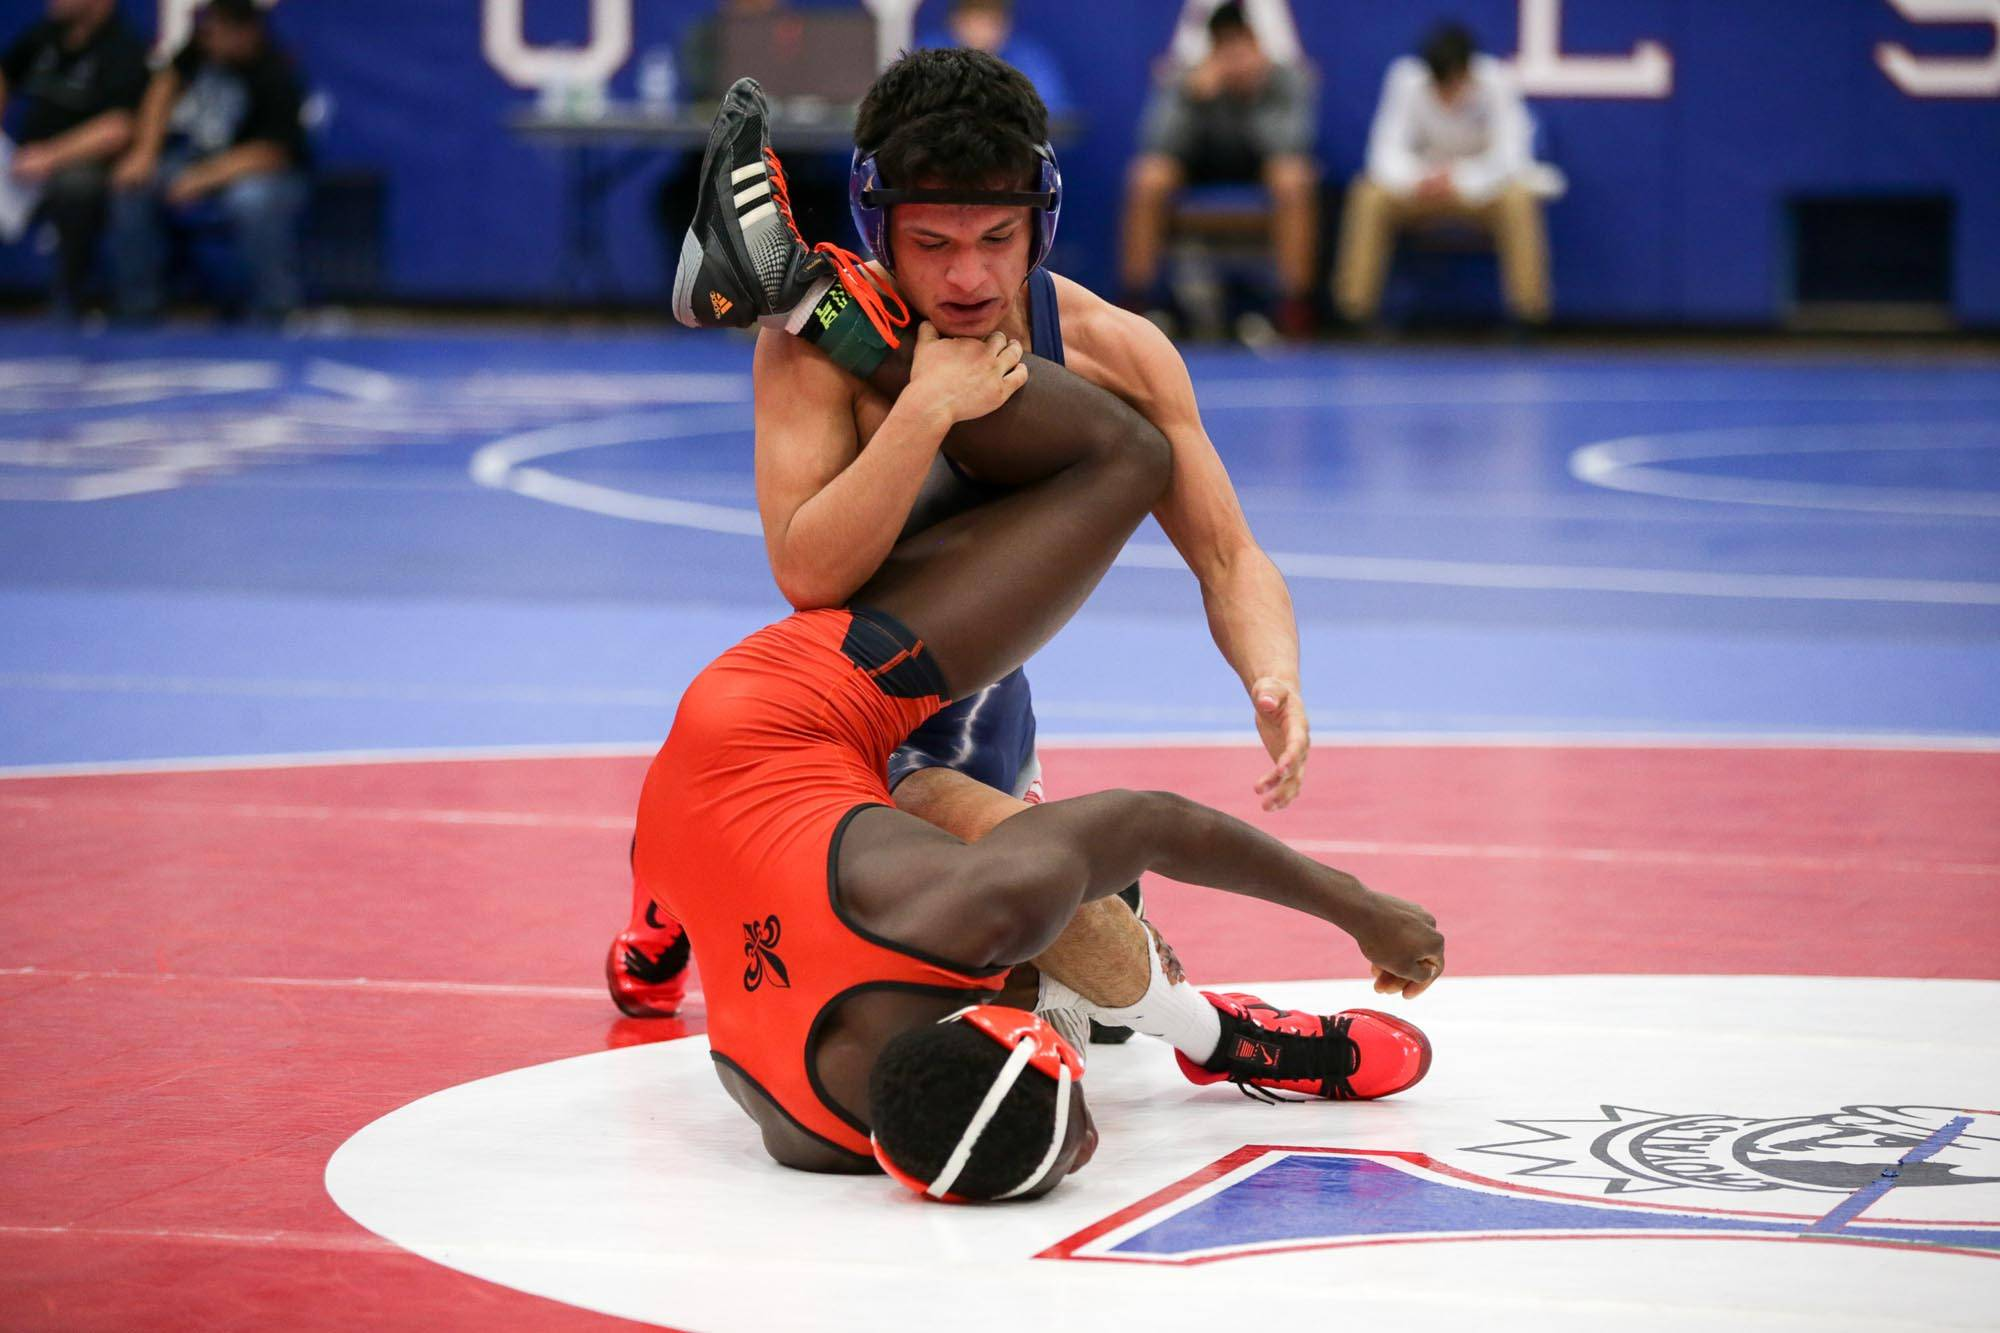 West Aurora's Issac Jacquez grabs the leg of St. Charles East's Lucson Schneider during their 126-pound final match at Larkin Saturday.